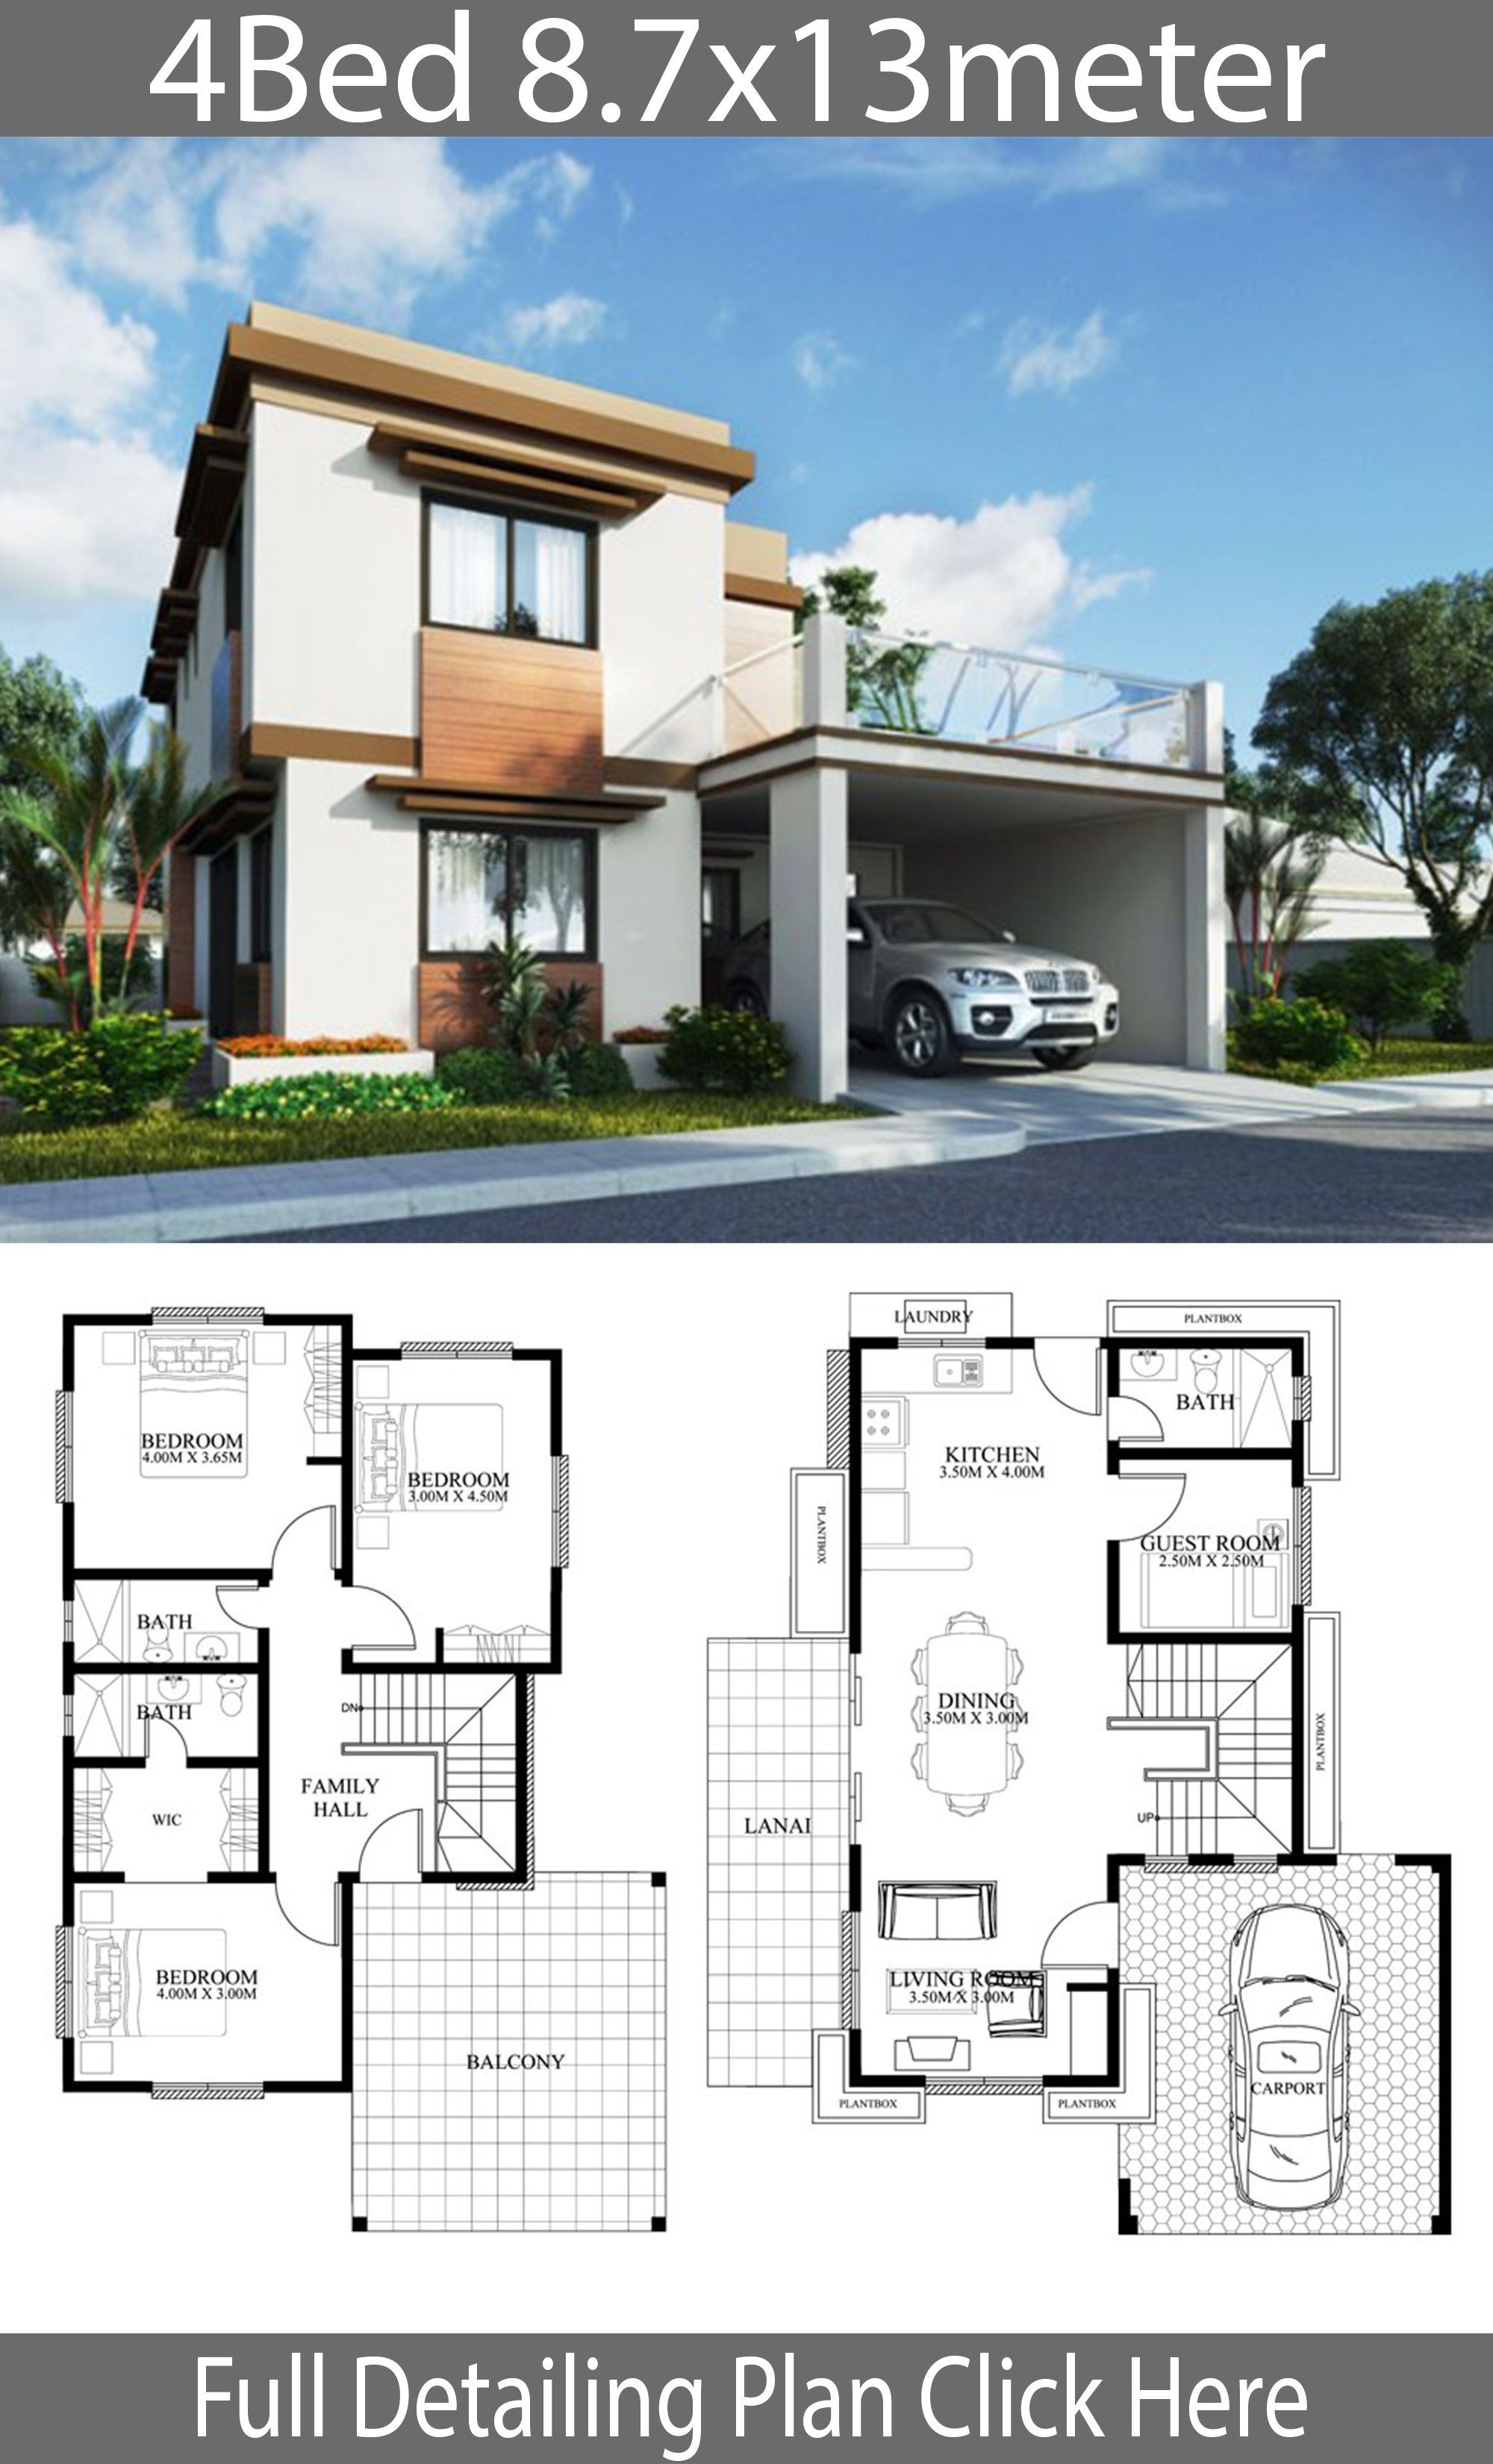 Home Design Plan 8 7x13m With 4 Bedrooms Home Design With Plan Model House Plan House Front Design 2 Storey House Design